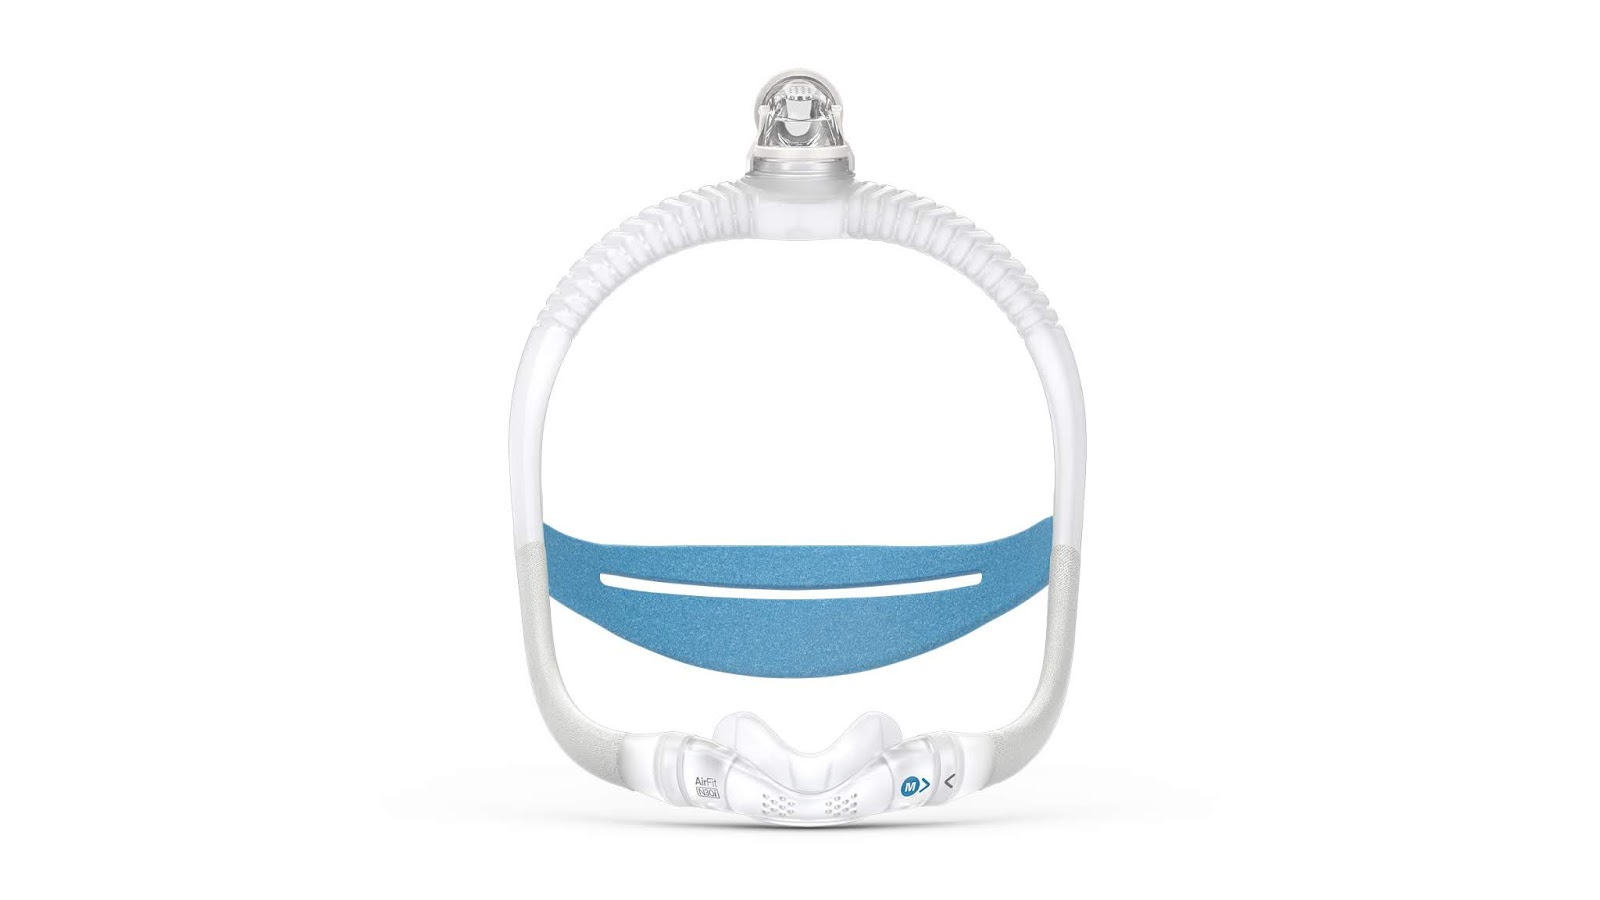 Dubai News Today: ResMed's First Top-of-Head CPAP Mask, AirFit N30i